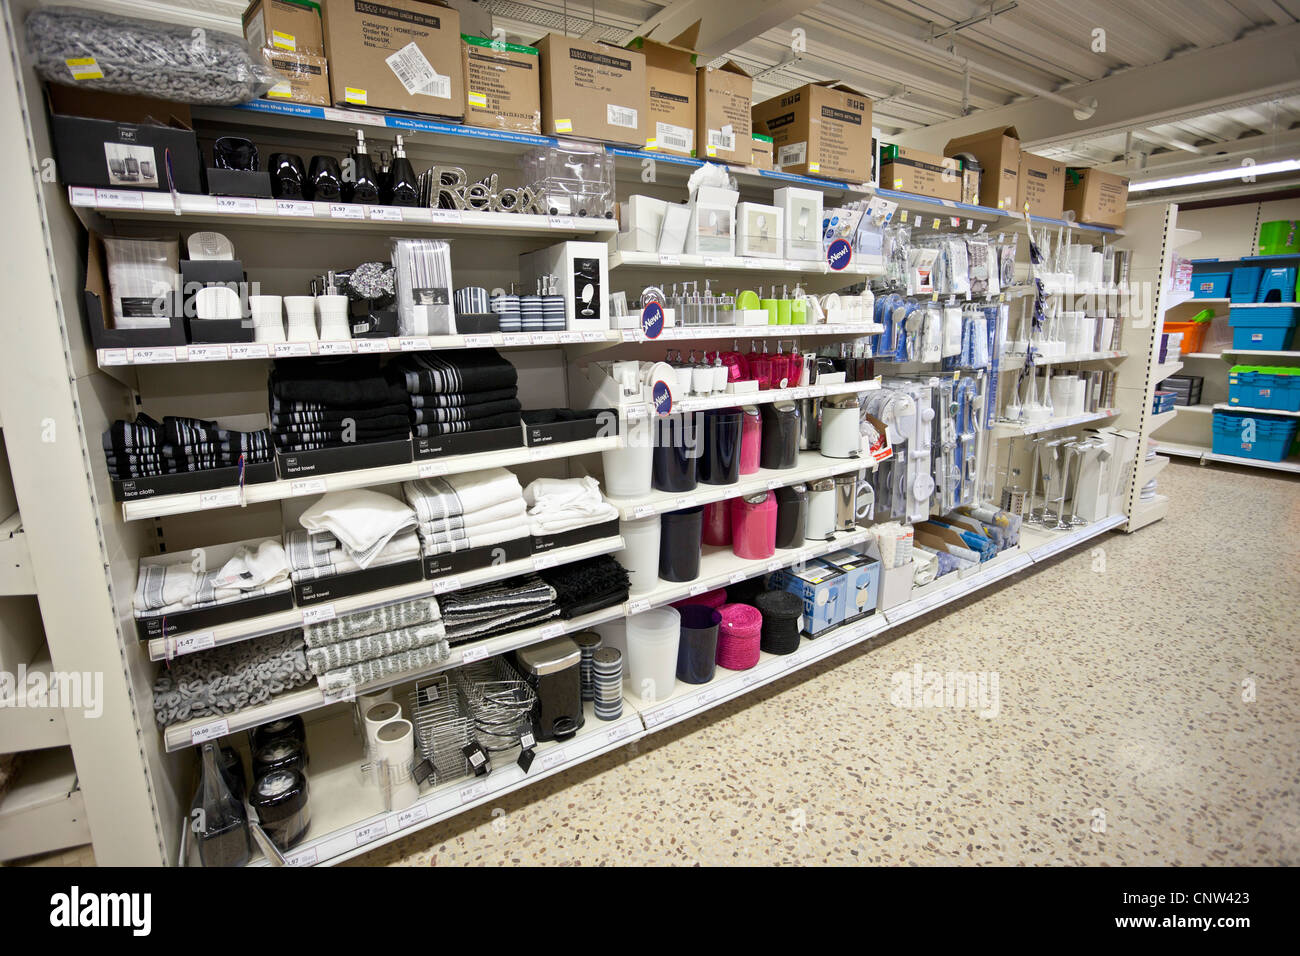 Bathroom accessories and toweling shelves of a shop, London, England ...